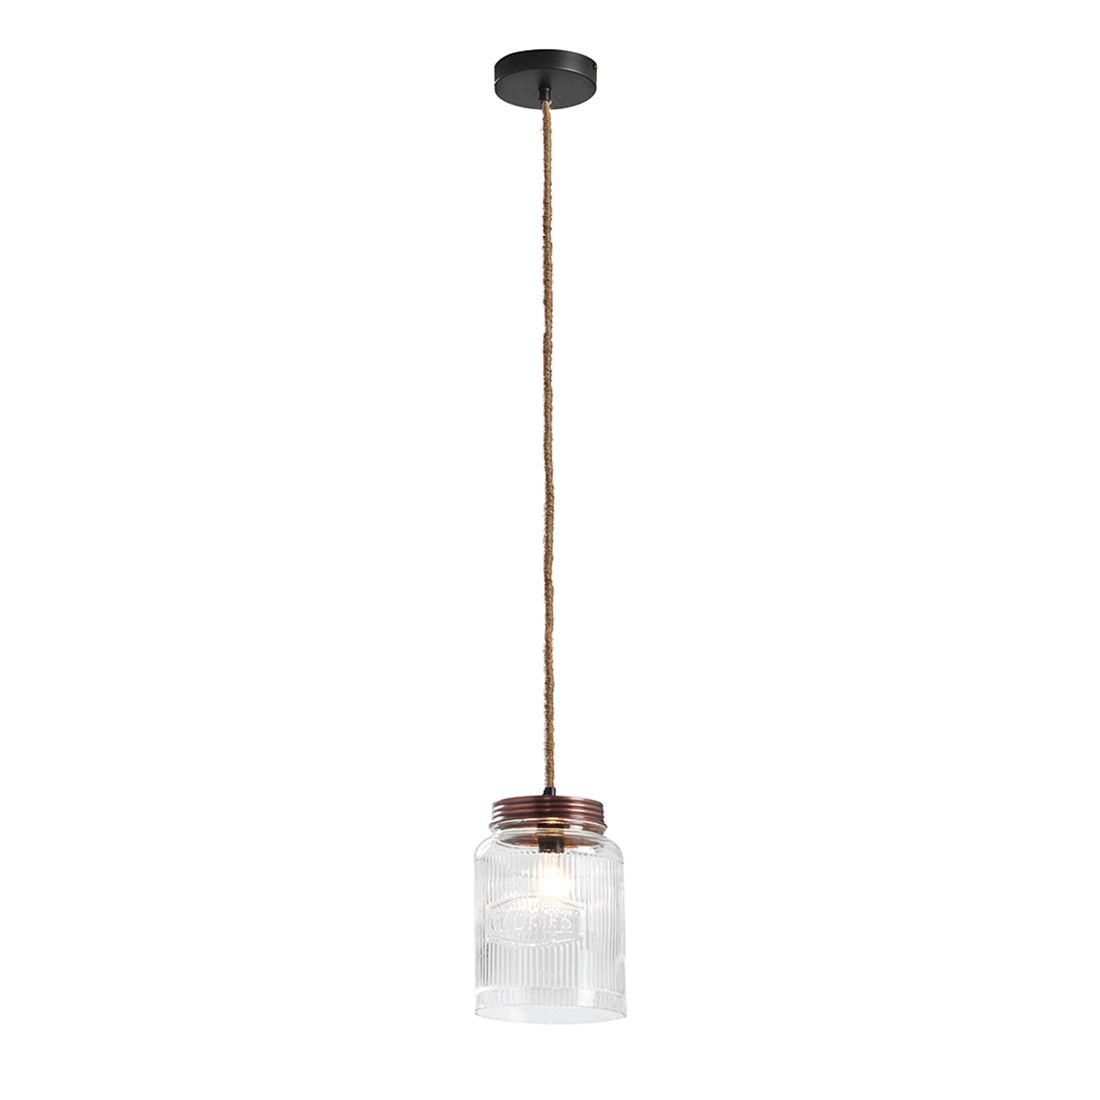 energie  A++, Hanglamp Finn - transparant metaal 1 lichtbron, Red Living